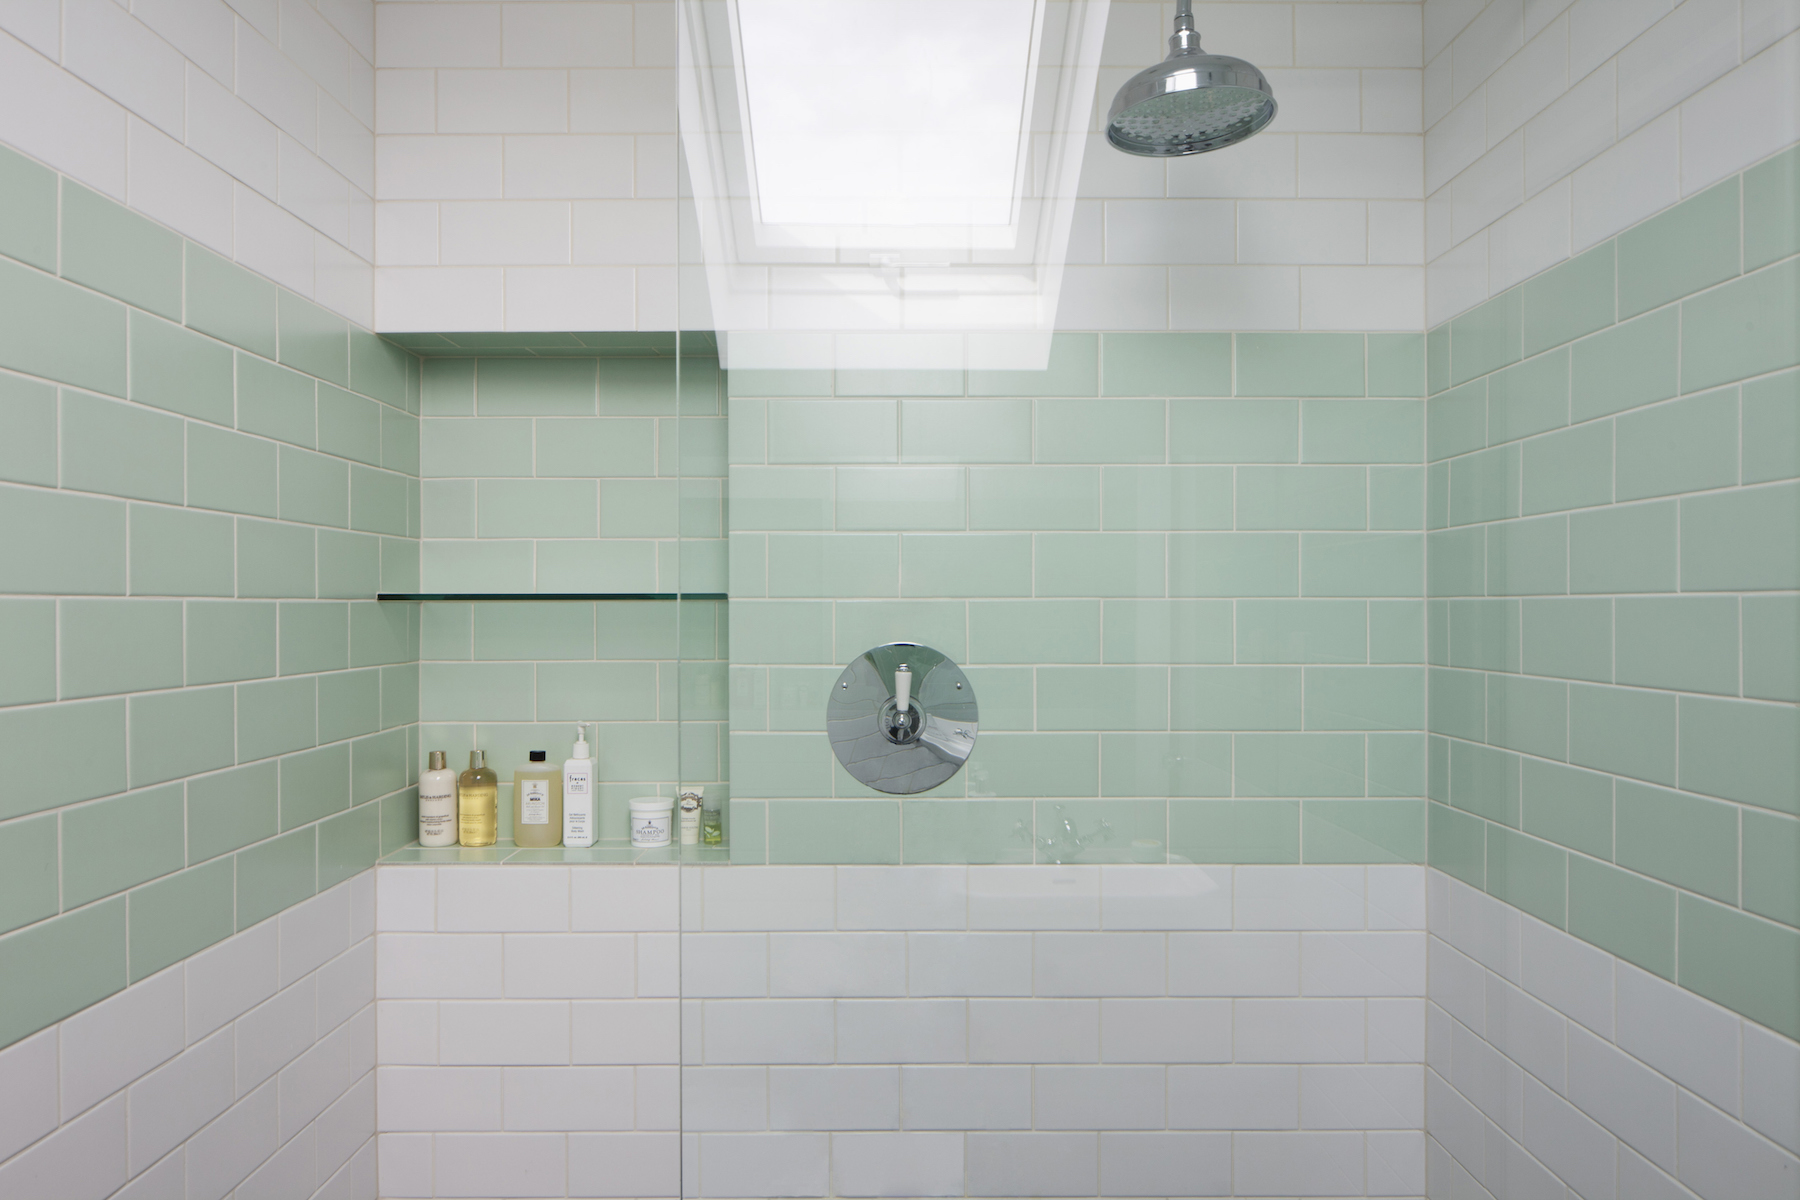 Tiled Bathroom Shower with green and white tiles